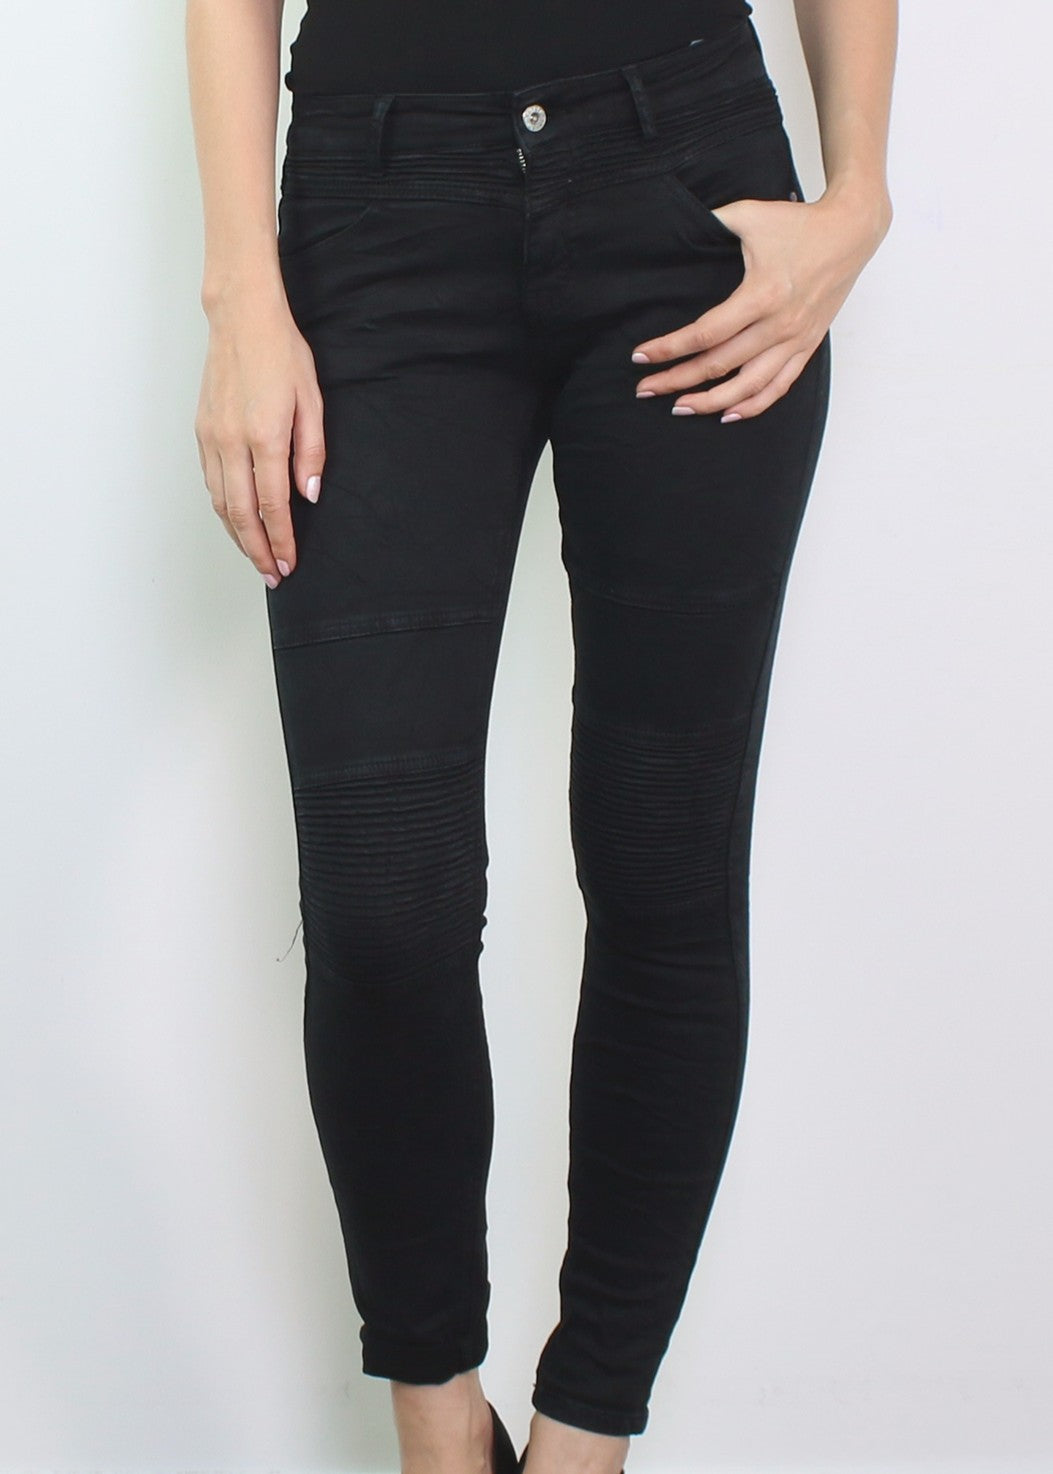 VLADA  Biker Jeans - Black - SOLD OUT